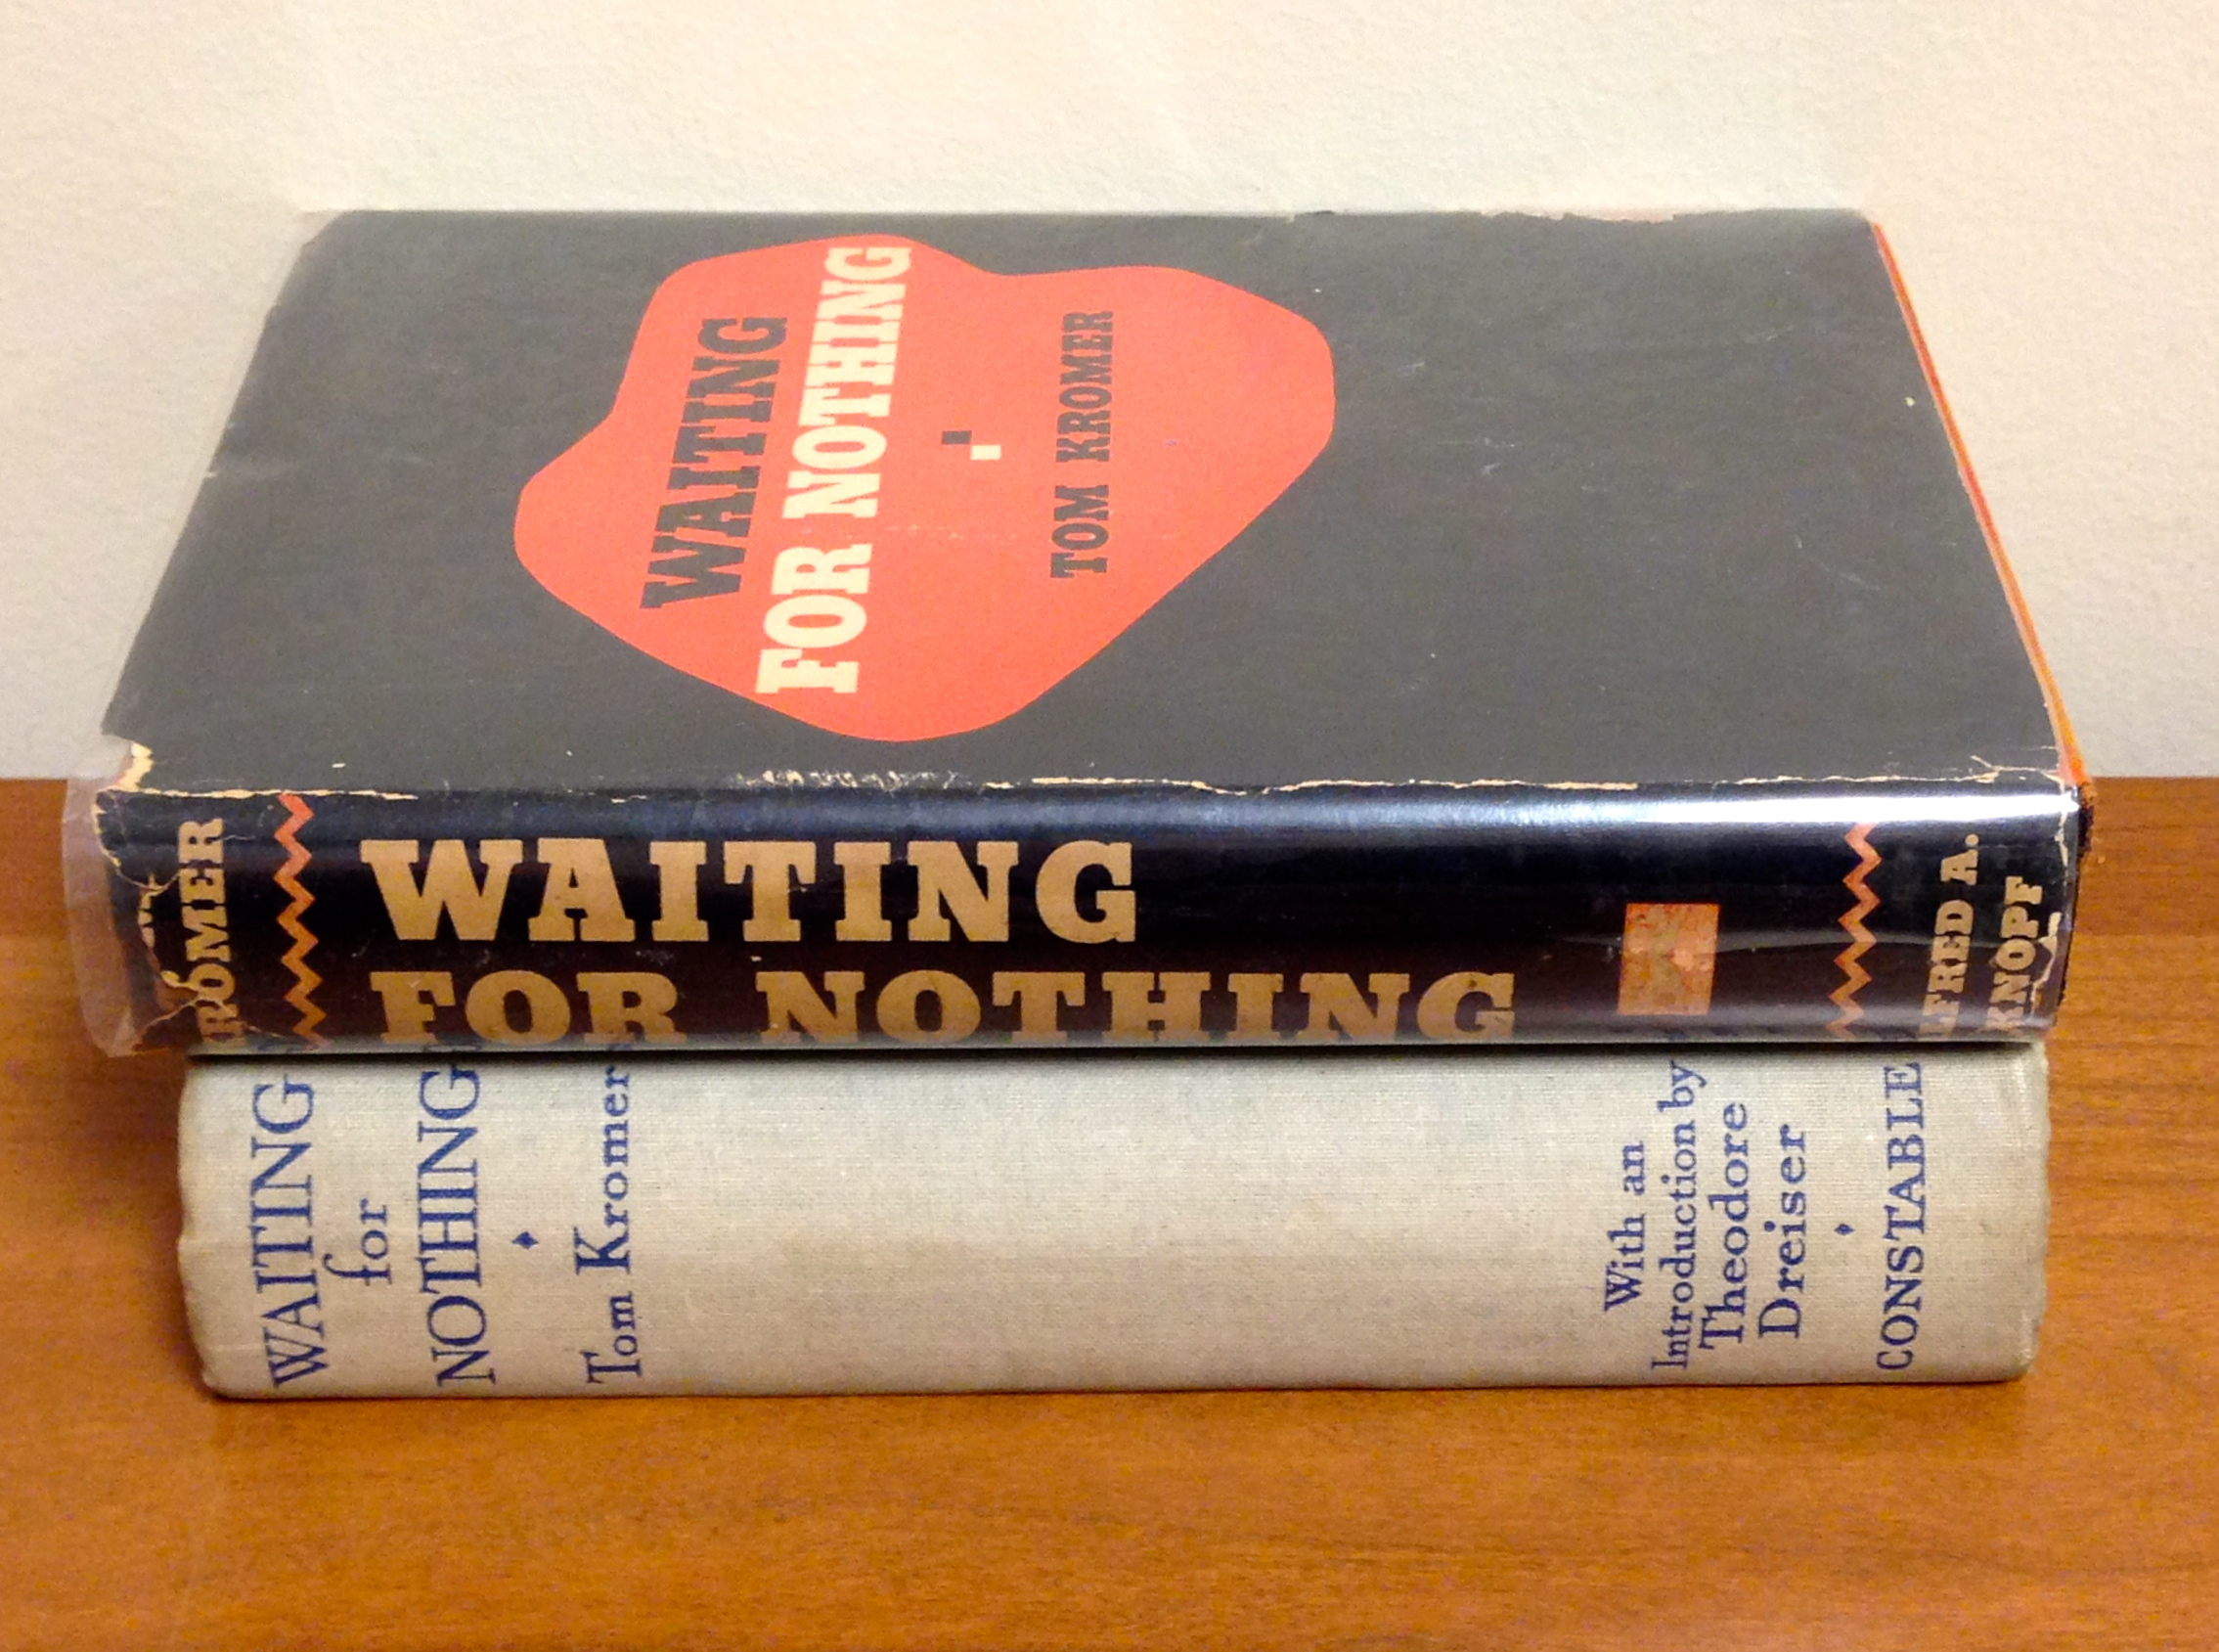 Top is the newly acquired American edition; below is the British edition with Dreiser's introduction.